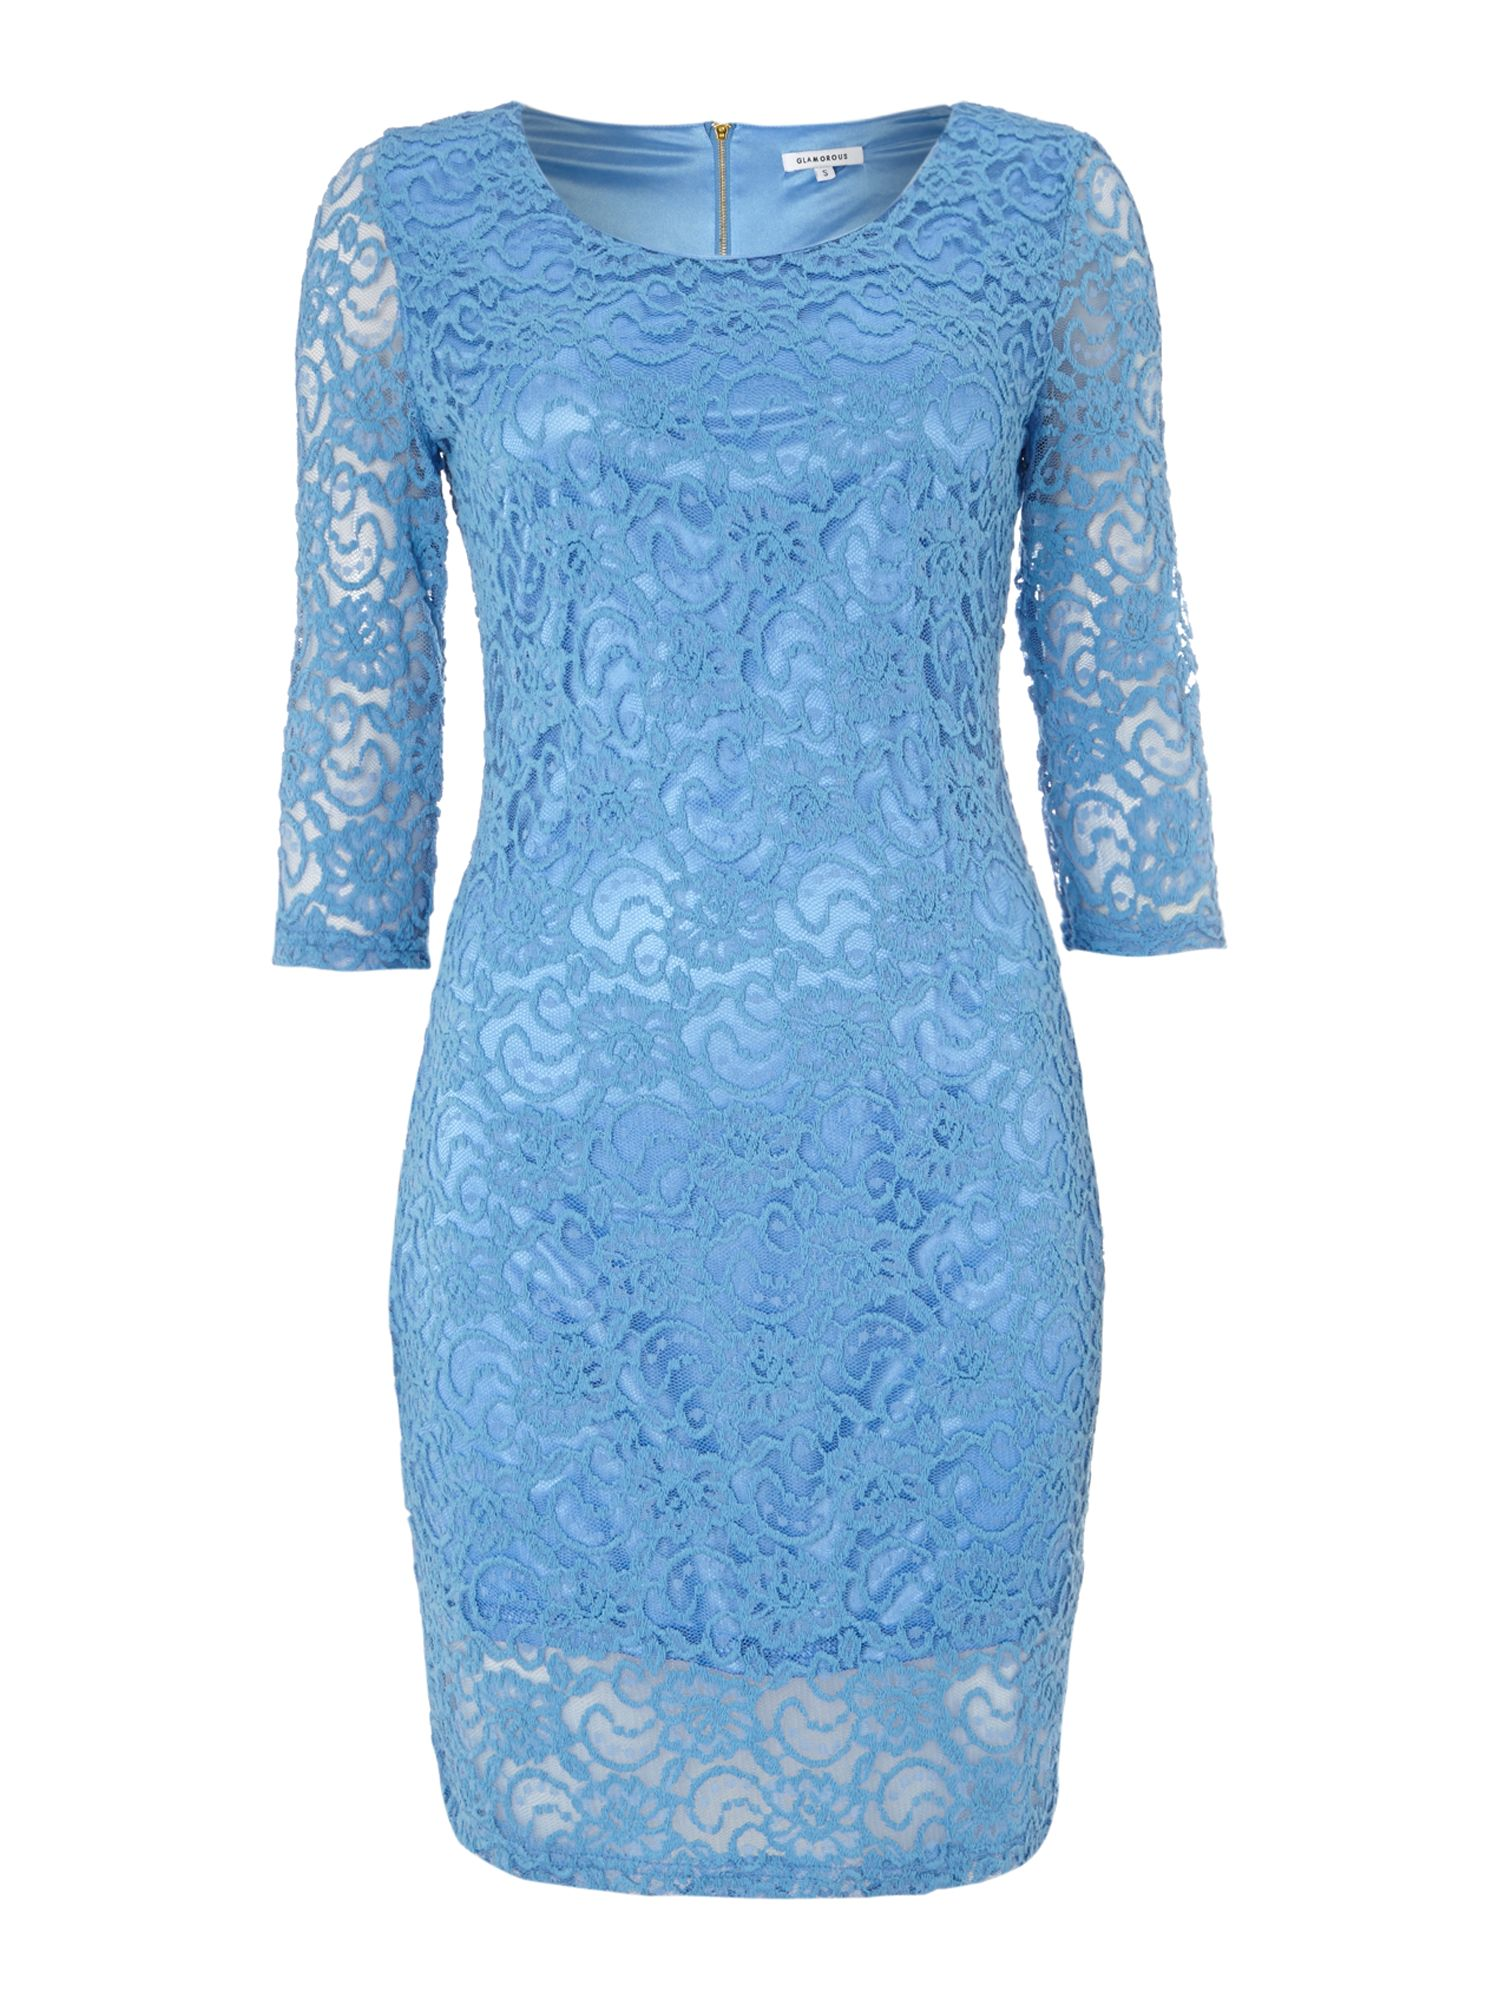 3/4 sleeved lace midi dress